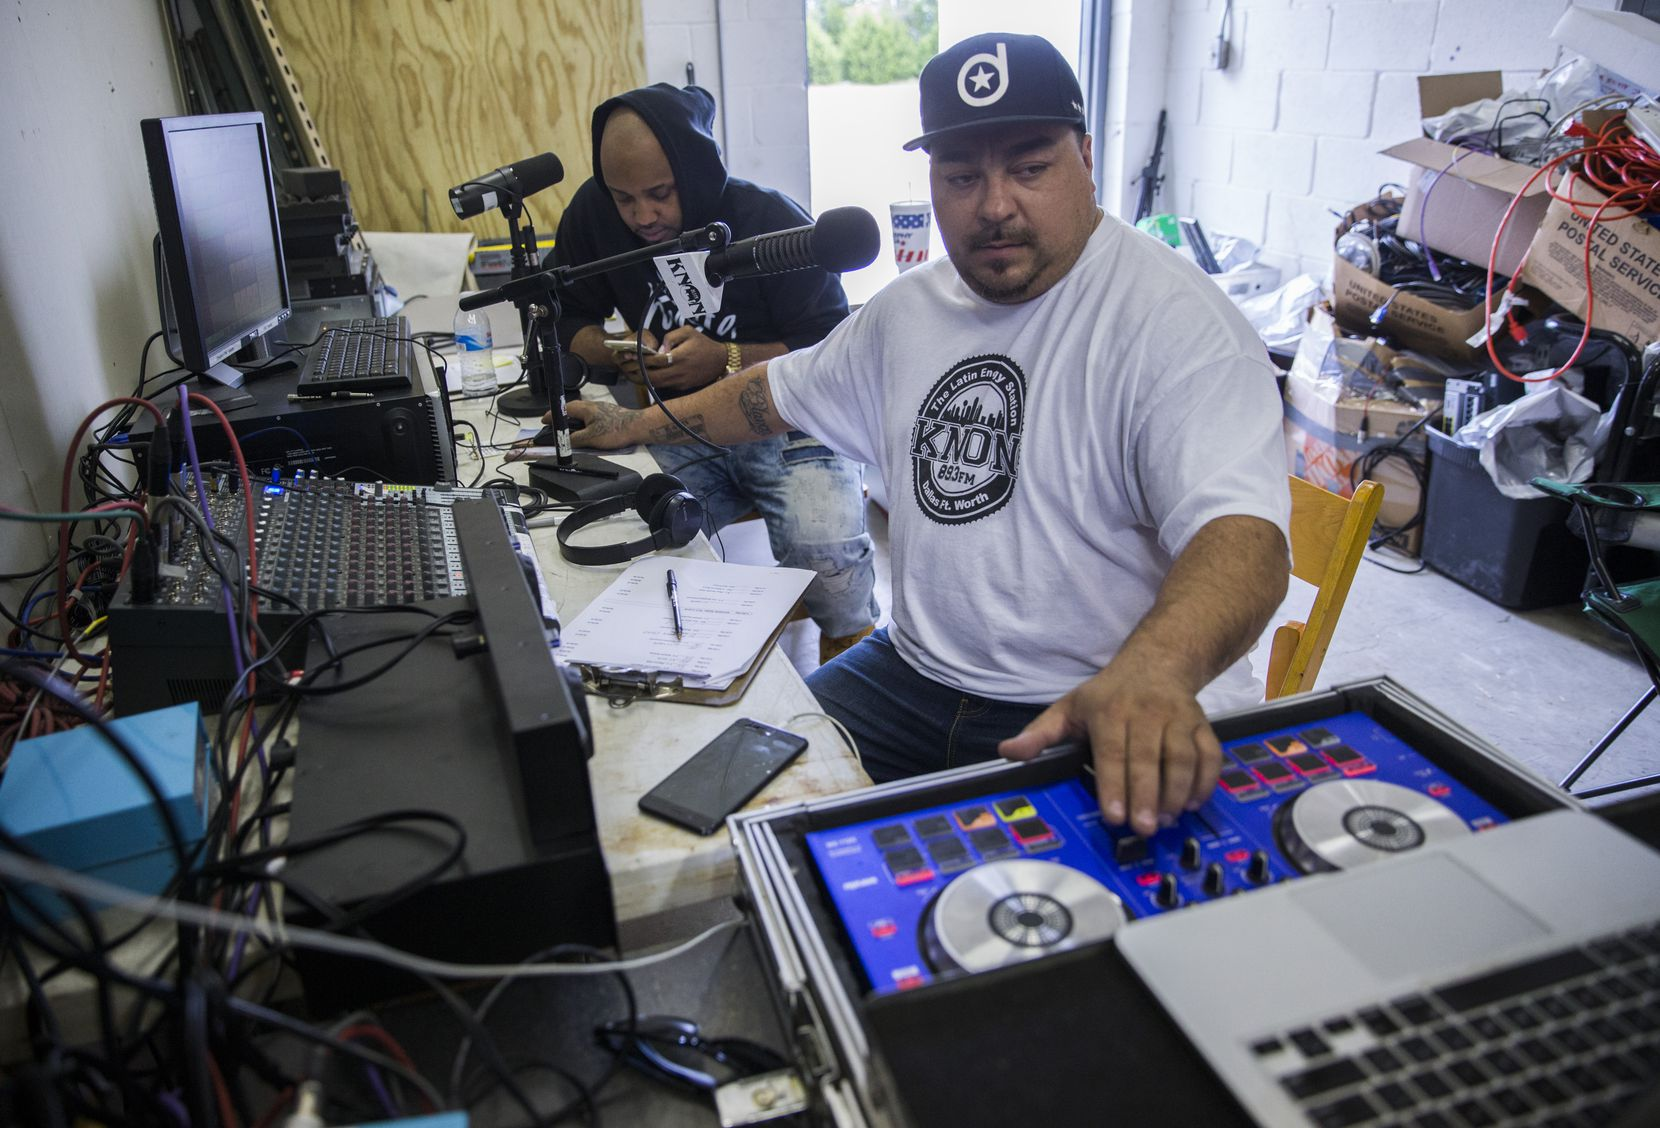 """KNON DJs Ruben """"Solo"""" Contreras (right) and Xavier Person, a.k.a. """"Romeo X,"""" host their radio show from a small storage building below the KNON radio antenna on Thursday, October 24, 2019 in Cedar Hill."""